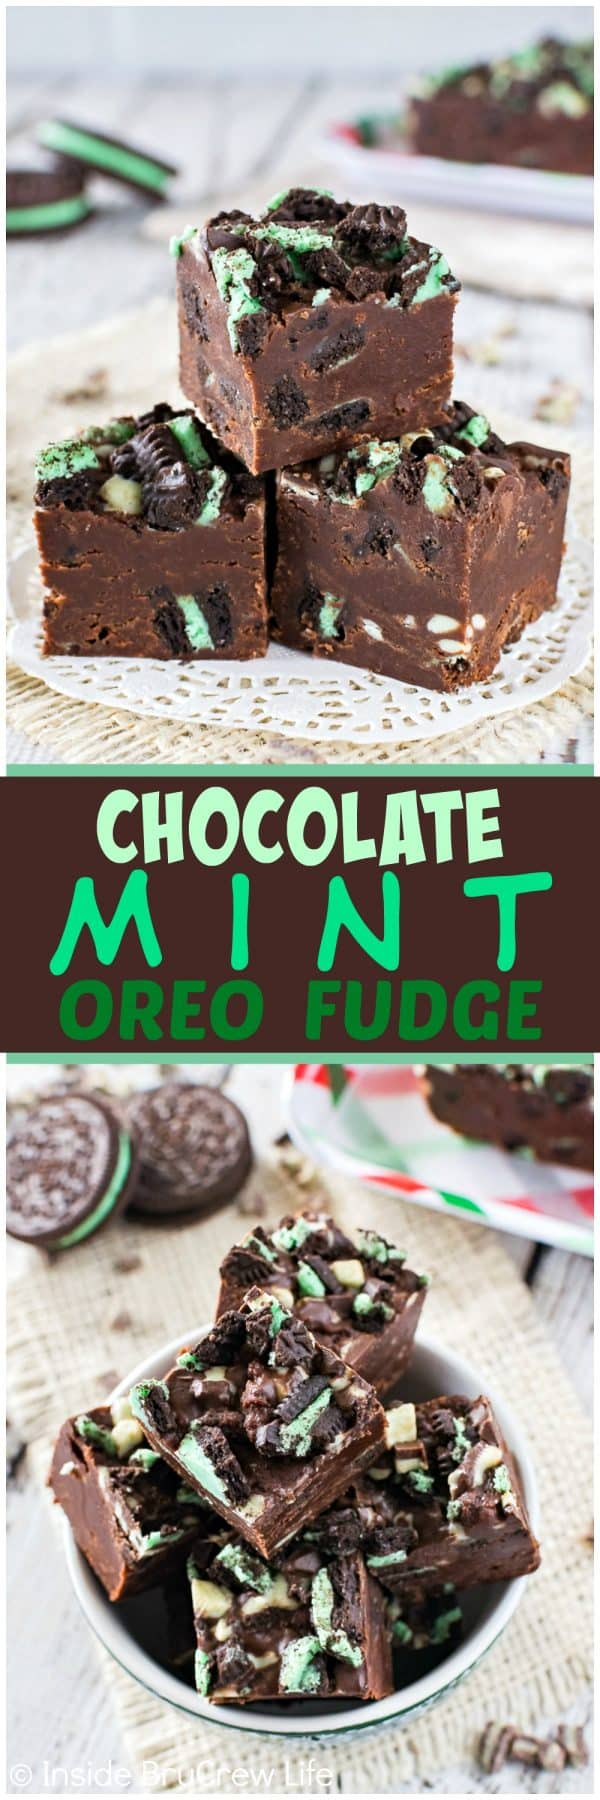 Chocolate Mint Oreo Fudge - these little creamy squares of mint fudge are loaded with cookie pieces and mint chips. Easy recipe to make for holiday parties!